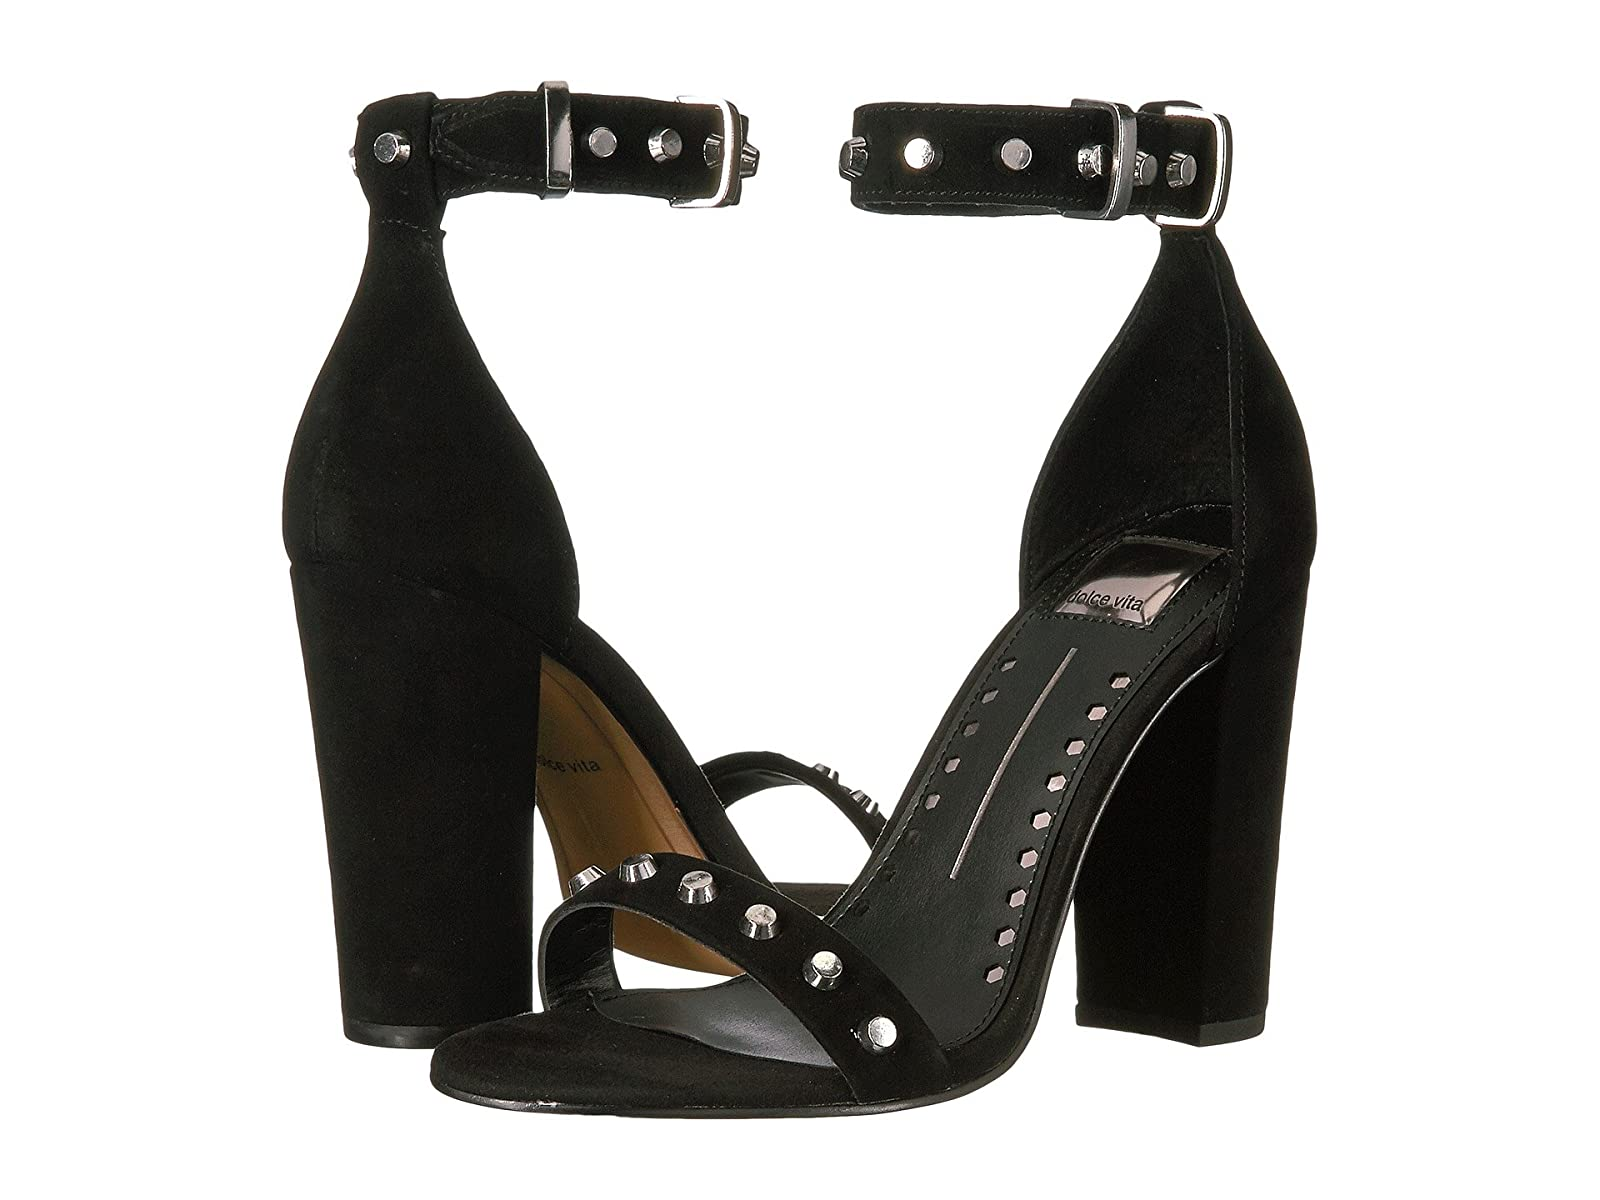 Dolce Vita HazellaCheap and distinctive eye-catching shoes